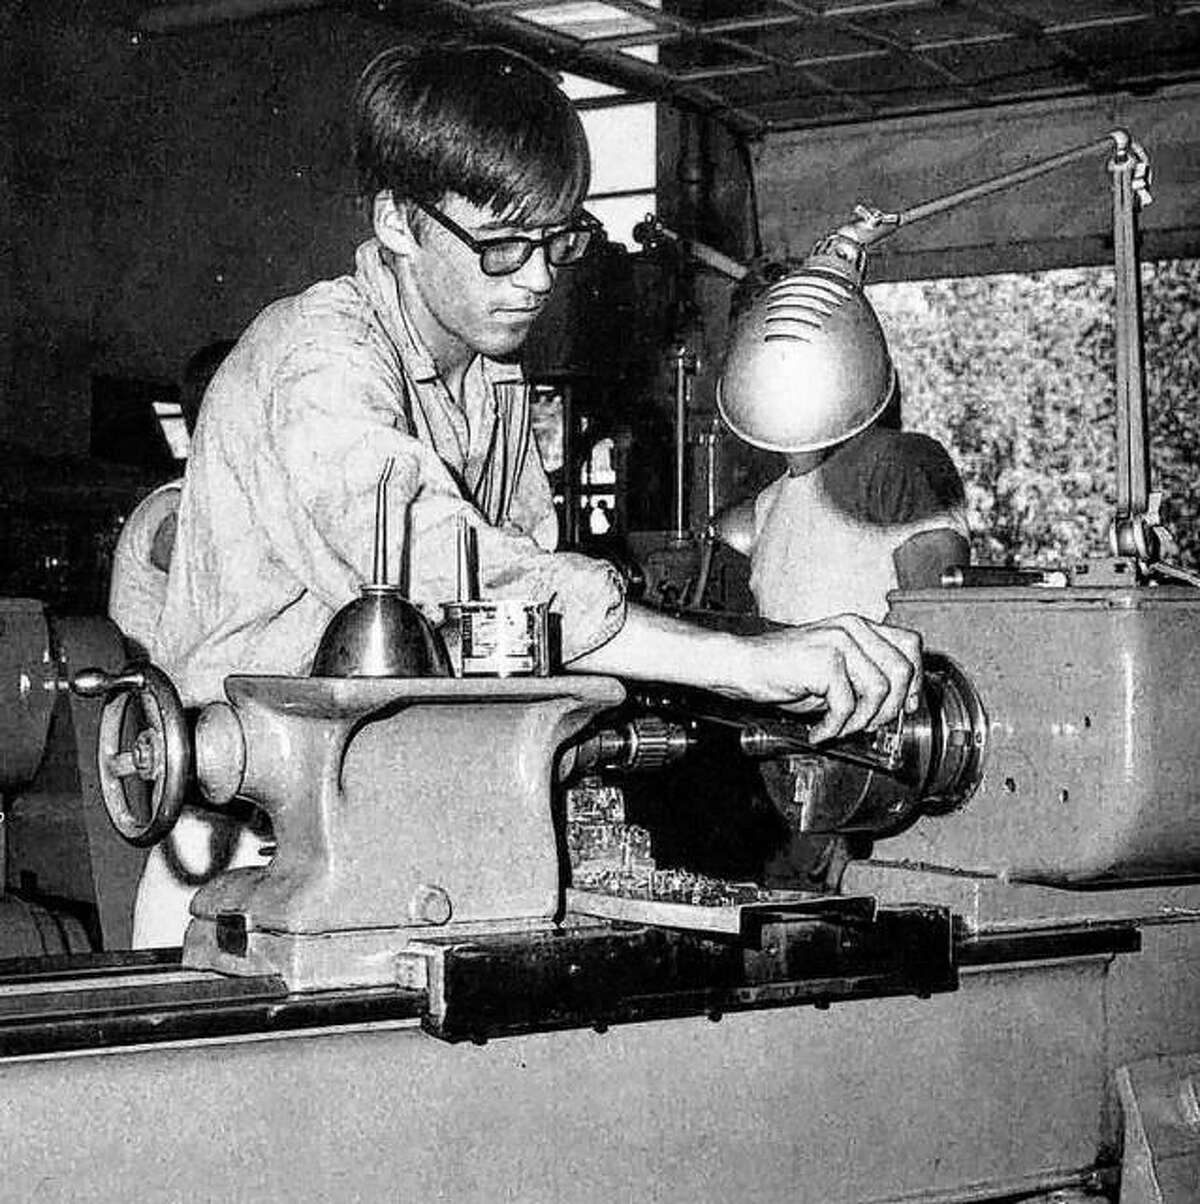 Student in metalworking class at Alton Senior High School, which offers many opportunities for the student to enter fully into school life through extracurricular activities covering a wide range of interests. Enrollment has increased over the years in Alton schools as the community has grown, and building has kept up with the steady increase. The community supports its schools.